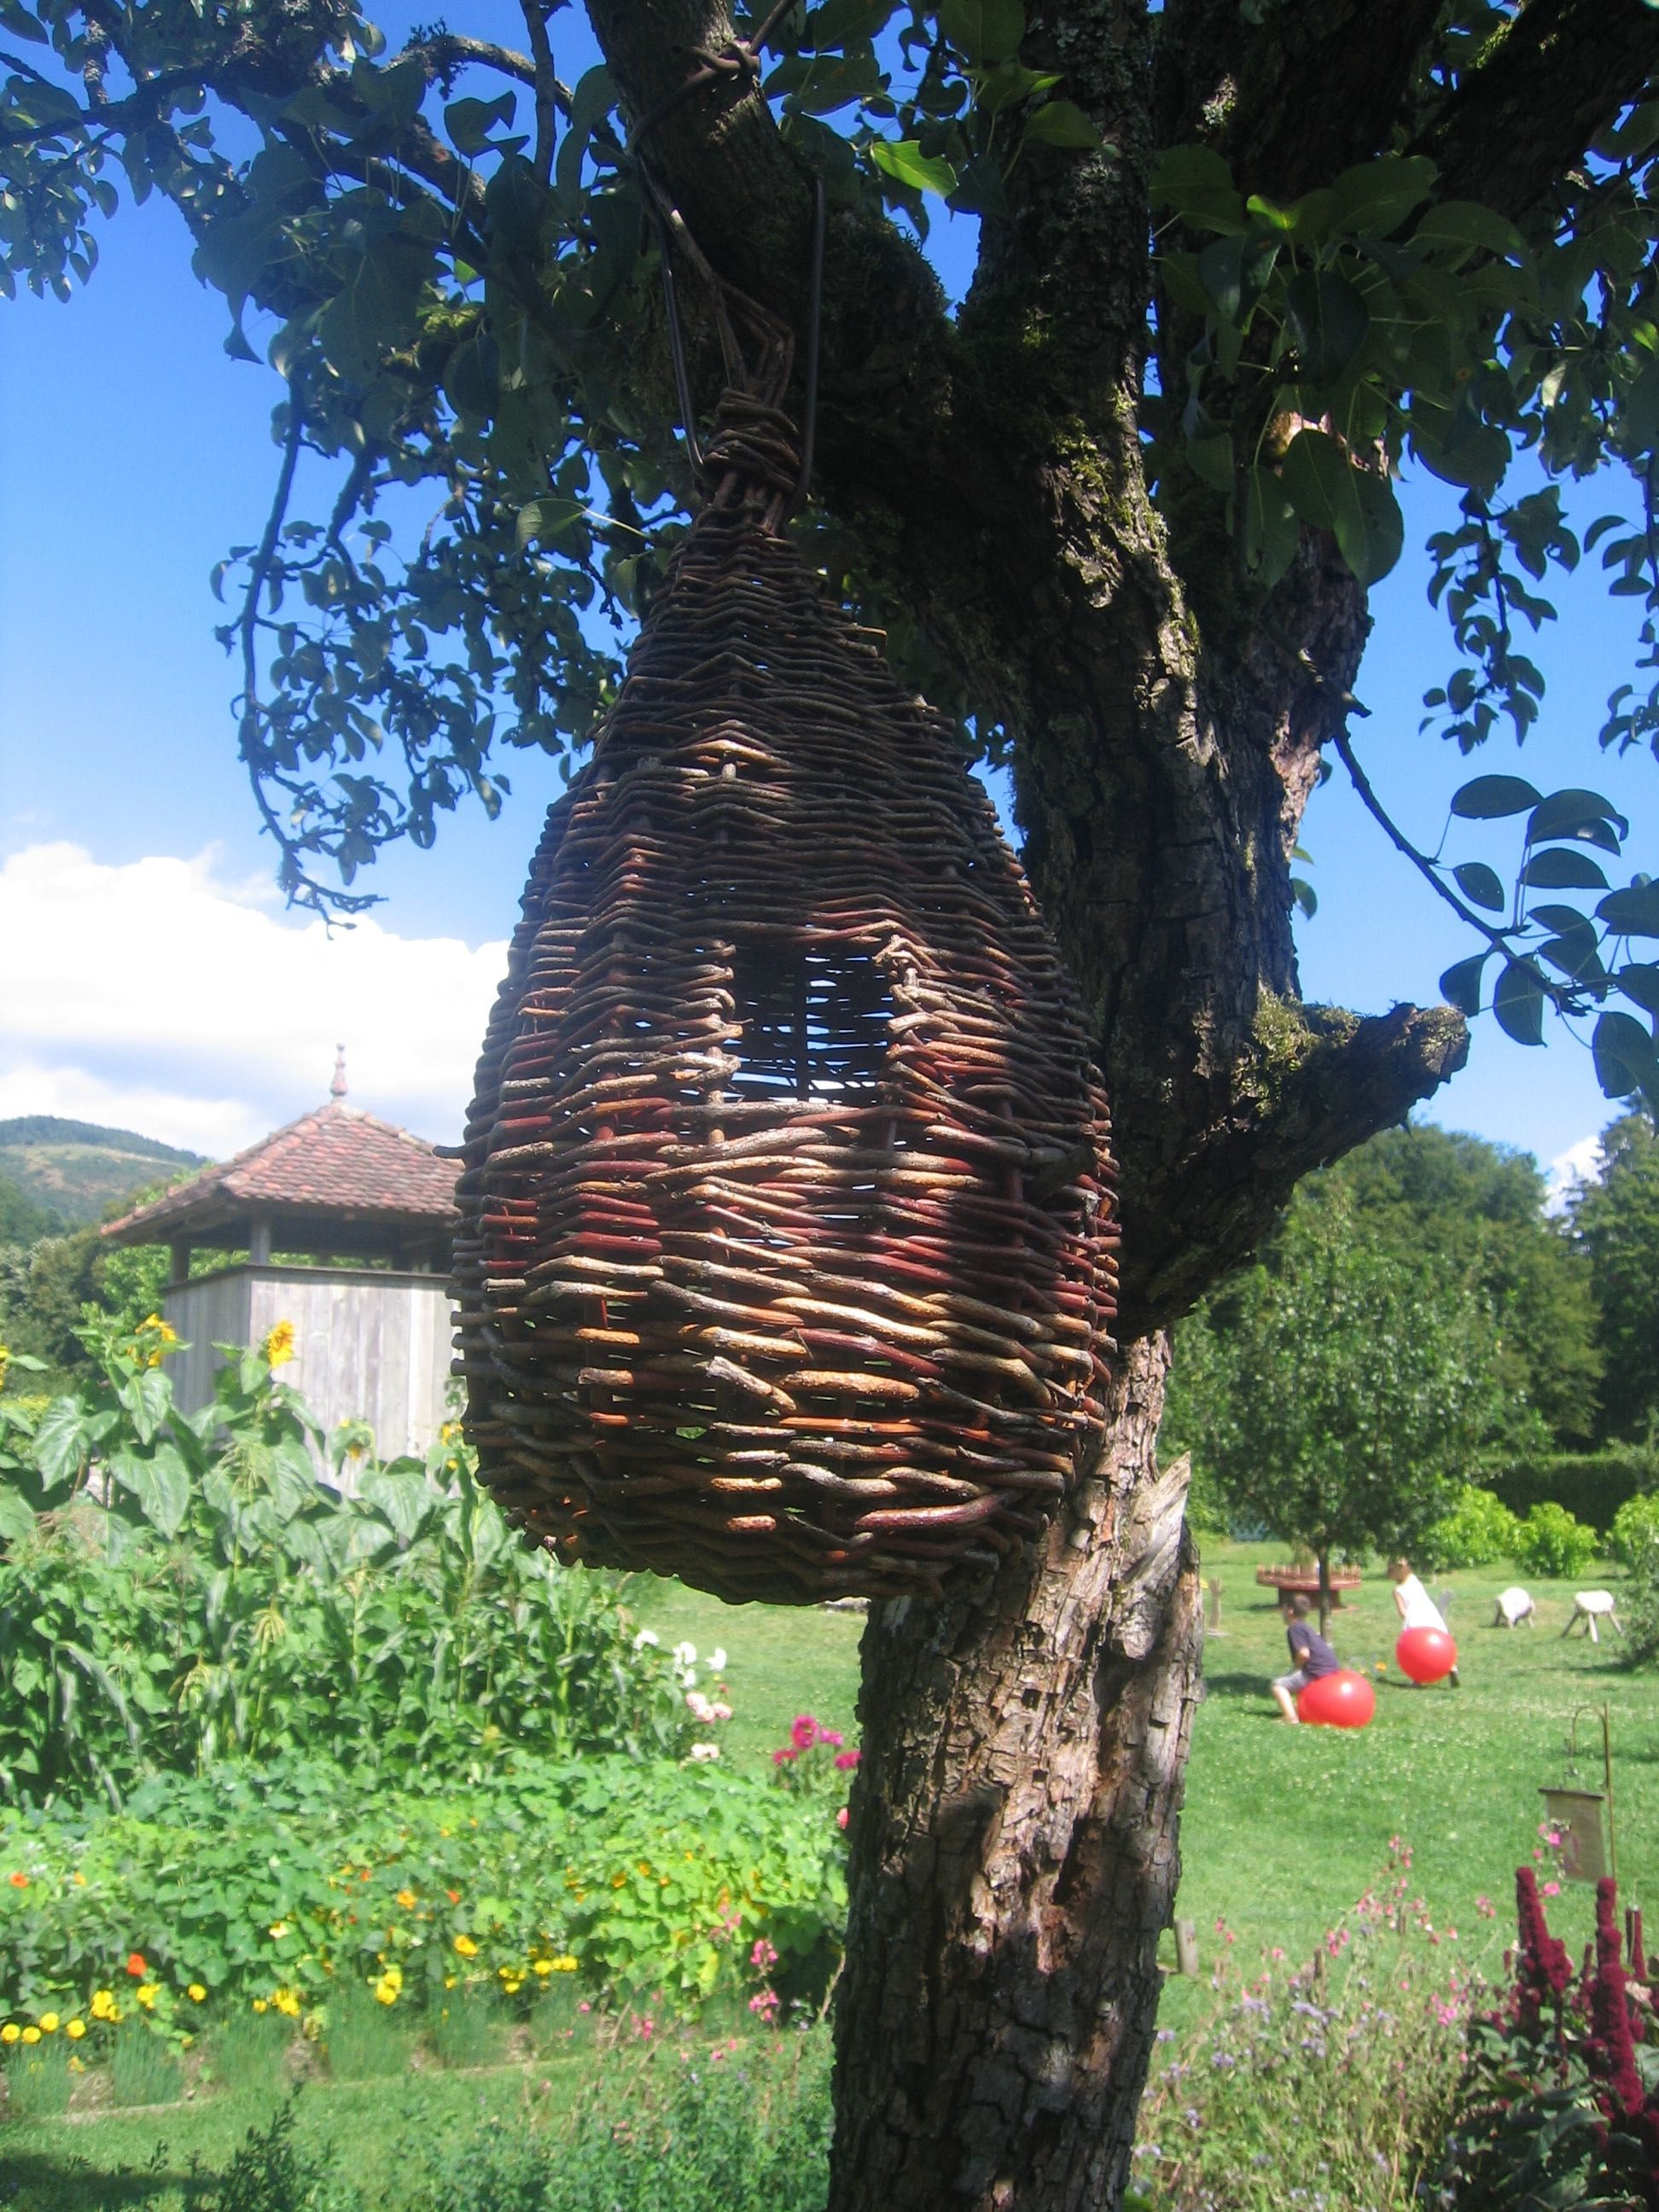 1/28/15 I am grateful for magical baskets in magical trees and magical gardens. (French garden August 2008)